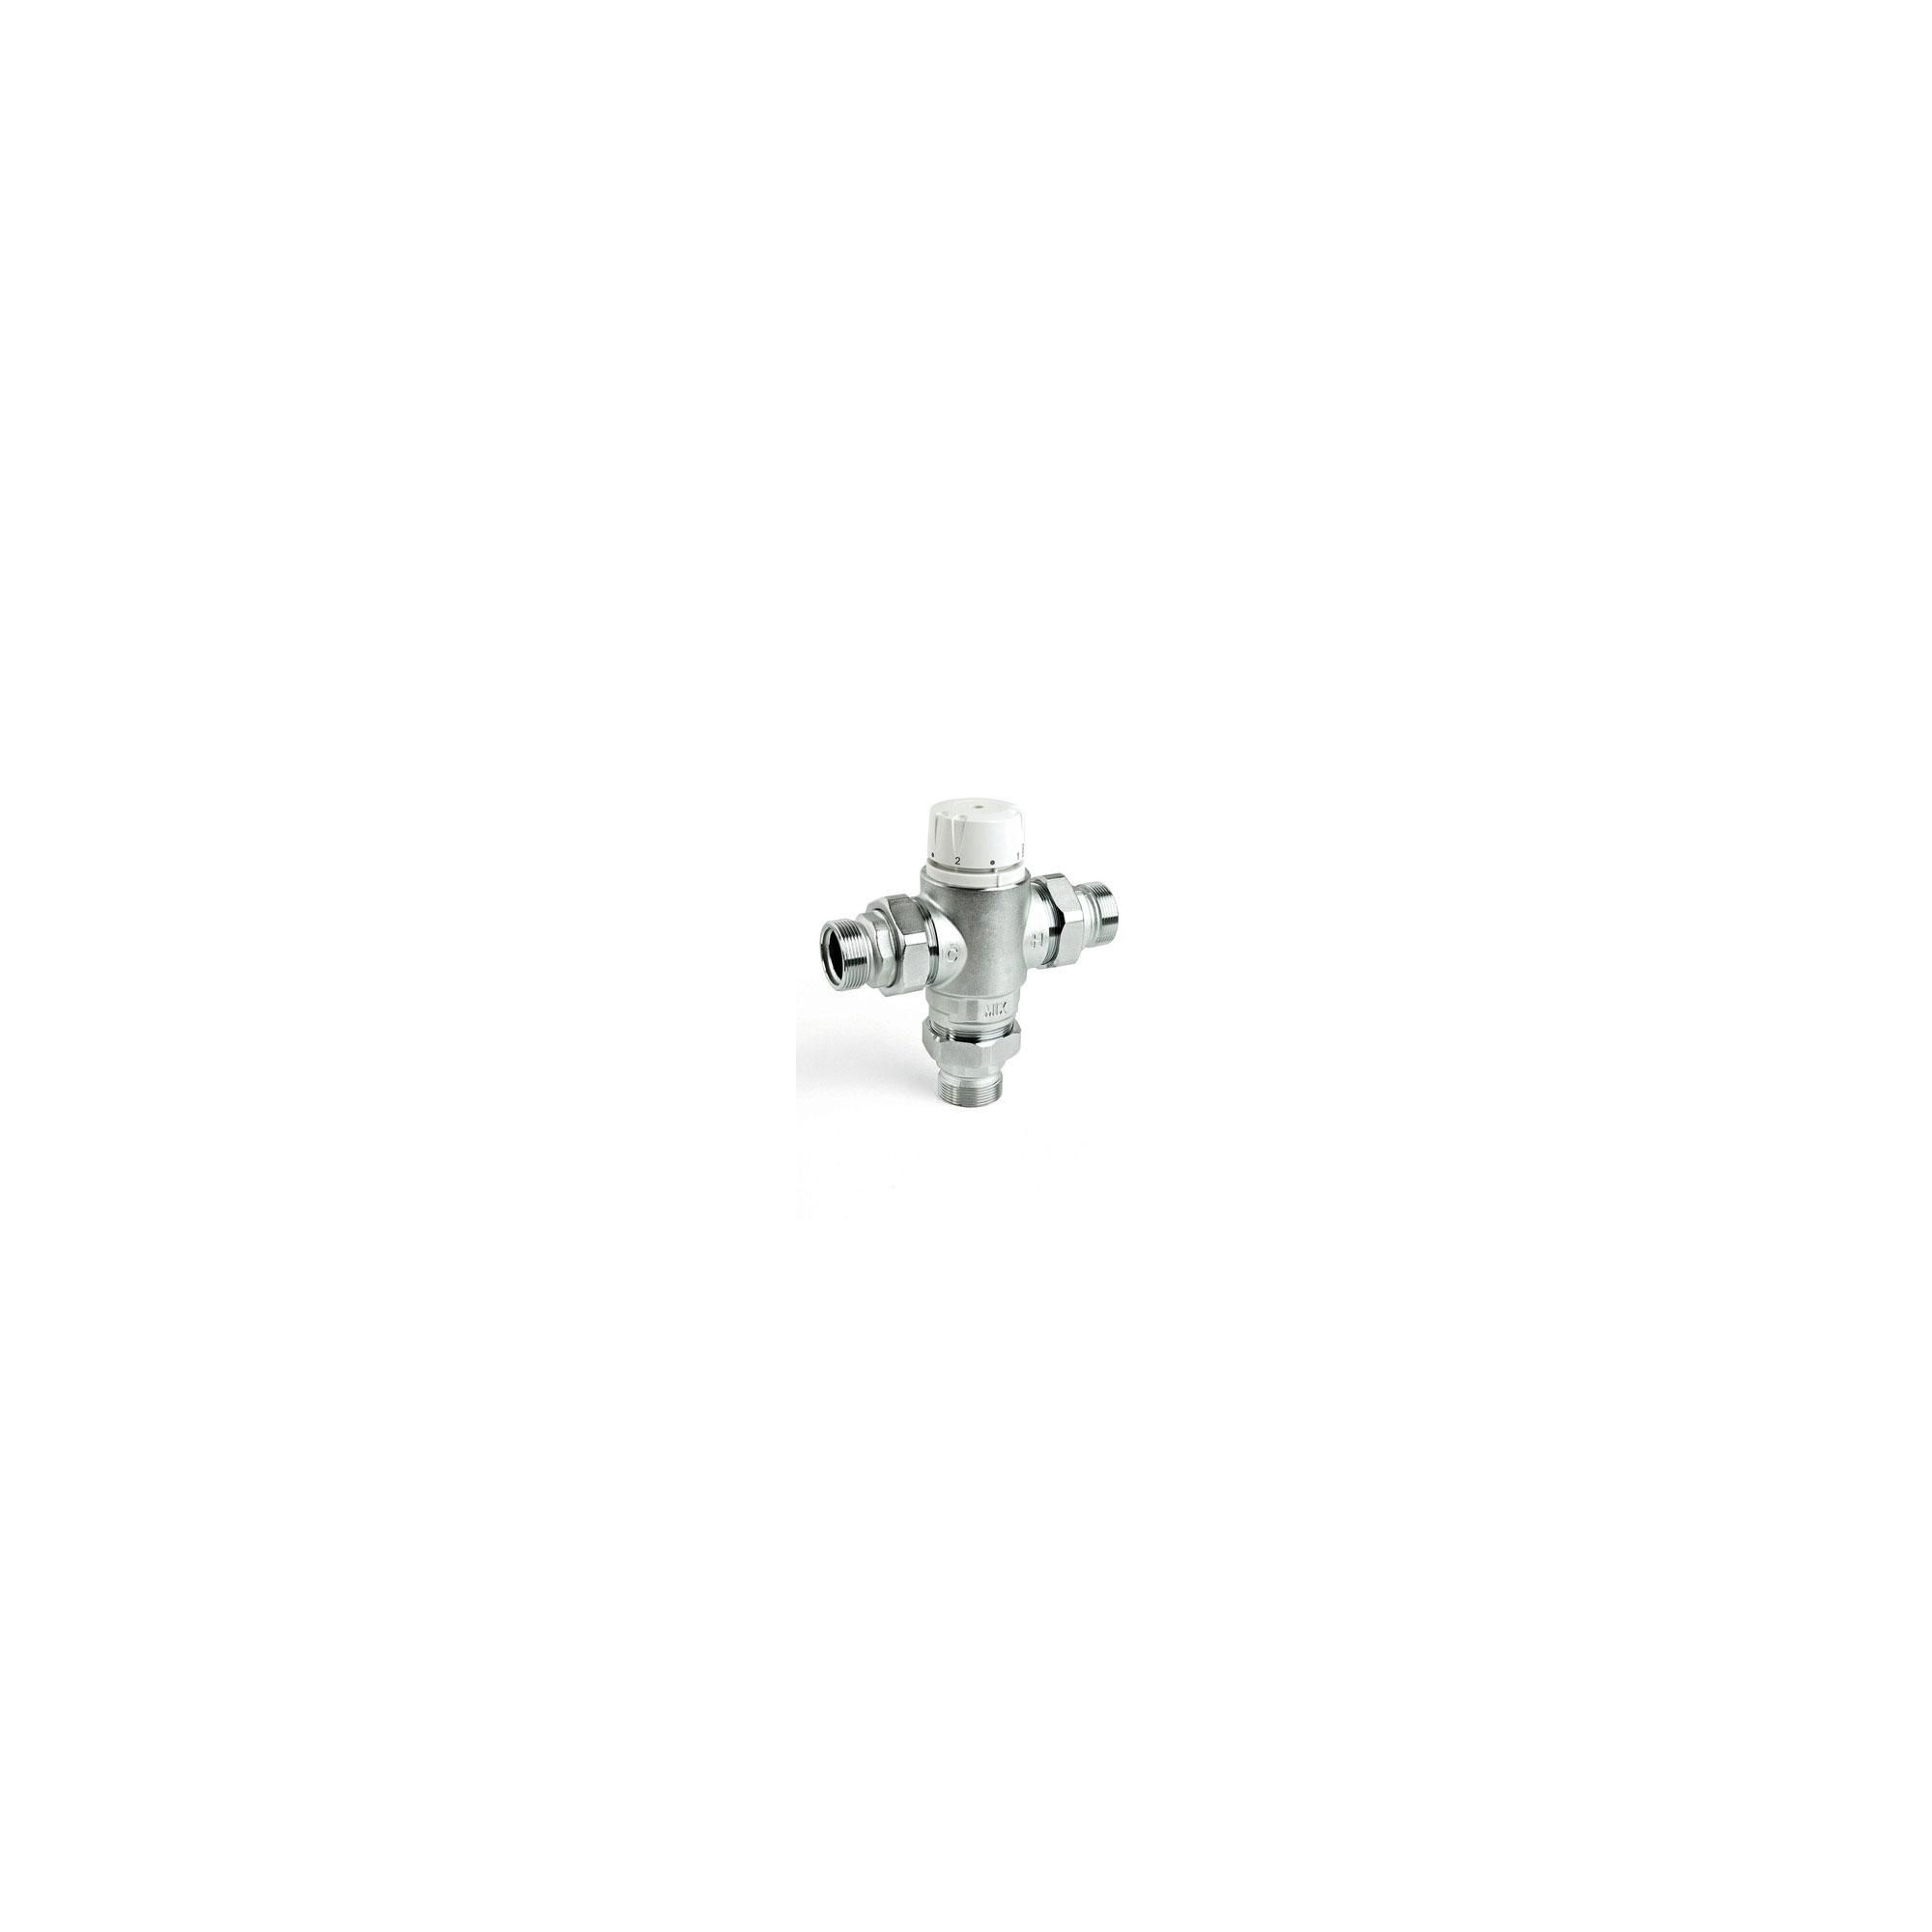 Intamix Pro Thermostatic Mixing Valve 1 1/4 with Screwed Iron and Check Valves at Tesco Direct